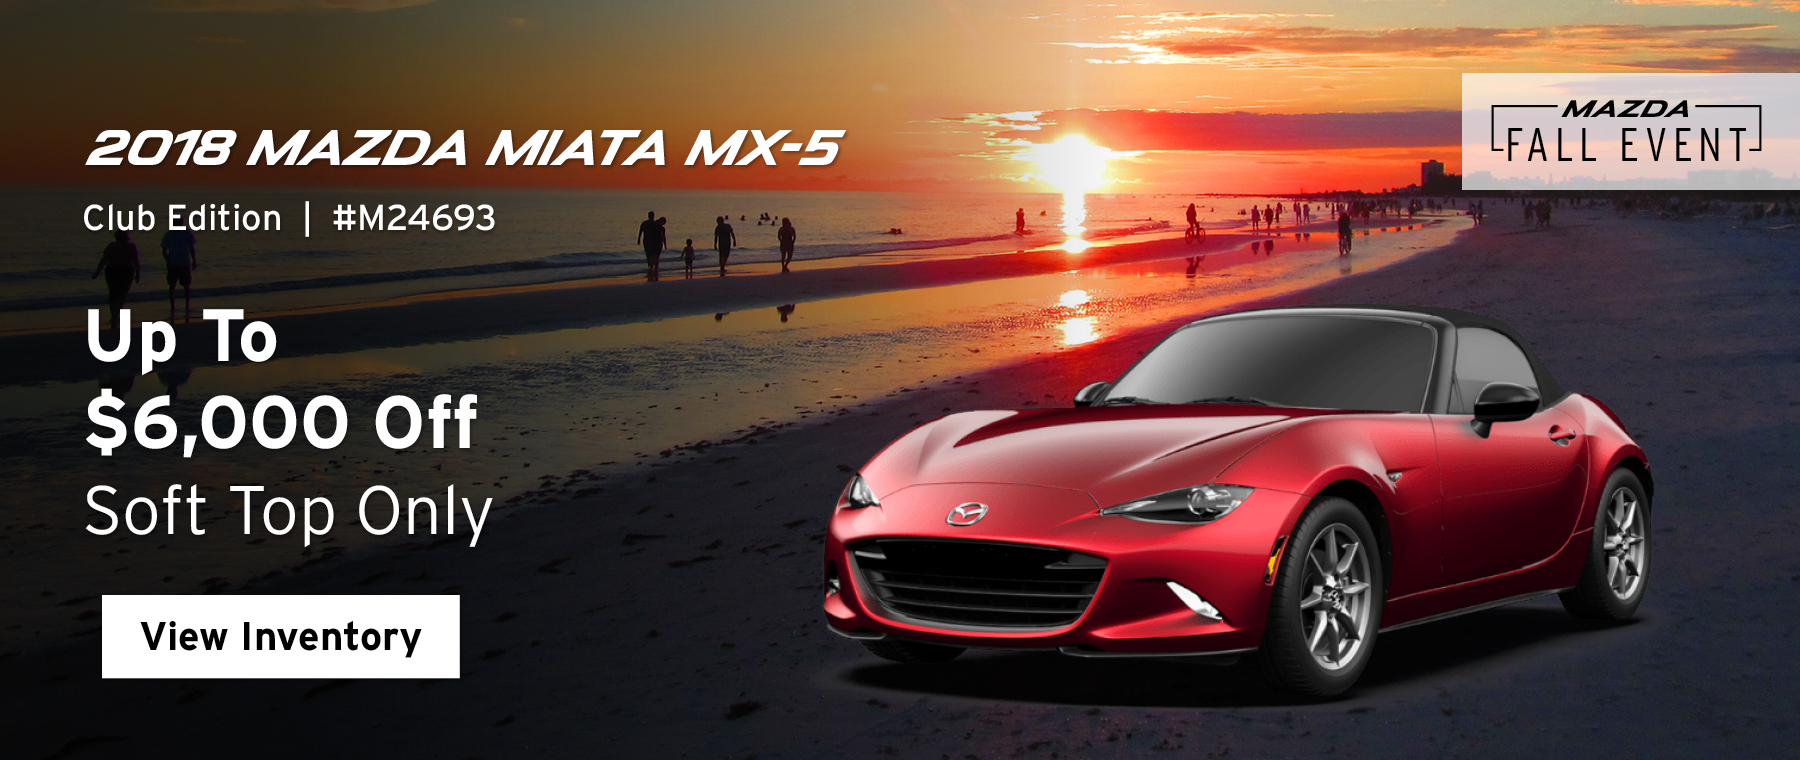 Up to $6,000 off the 2018 Mazda Miata MX-5 Club Edition Soft Top only.